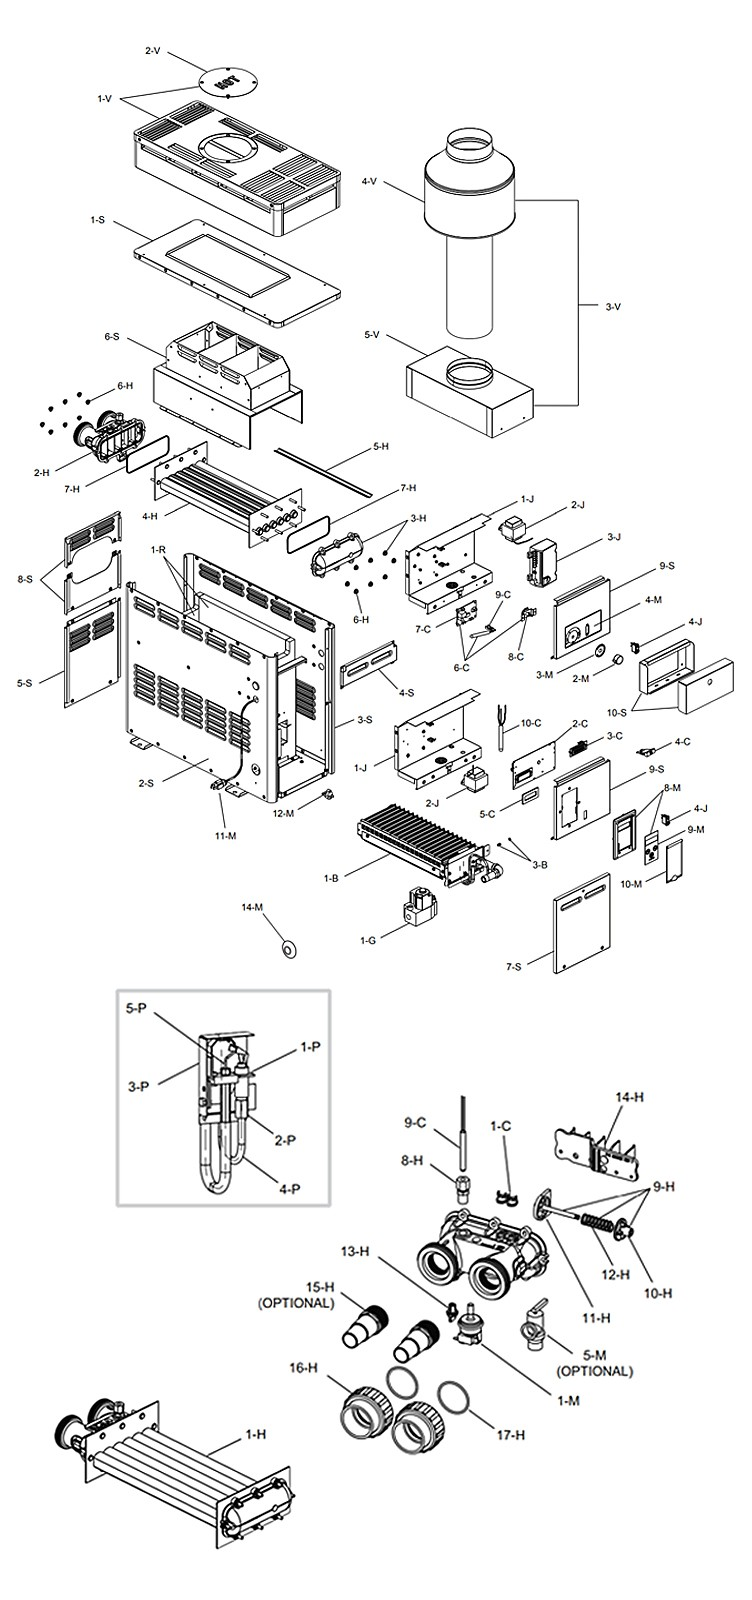 Raypak 106A Above Ground Pool & Spa Heater   Analog   Electronic Ignition   Propane Gas 105K BTU   High Altitude 4000-6999 Feet   P-M106A-AP-C 014801 P-R106A-AP-C 014783 Parts Schematic